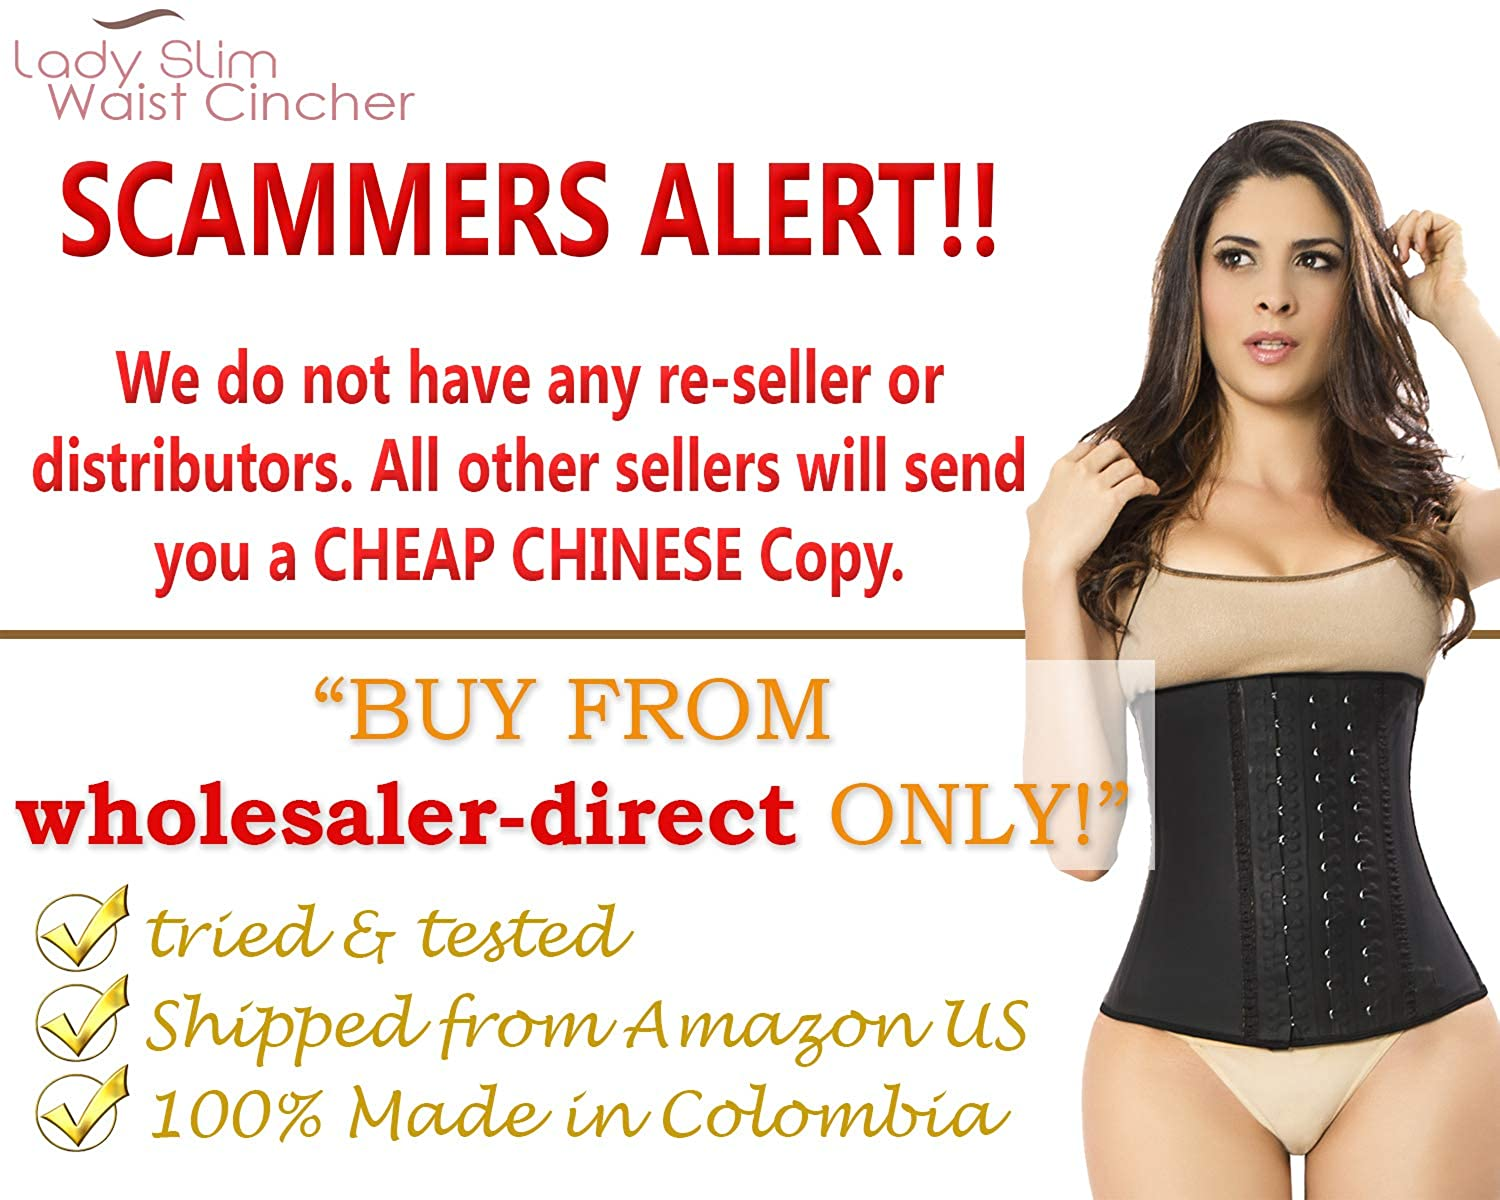 d18d2cc815 LADY SLIM Fajas Colombiana Latex Waist Cincher Trainer Trimmer Corset  Weight Loss Shaper at Amazon Women s Clothing store